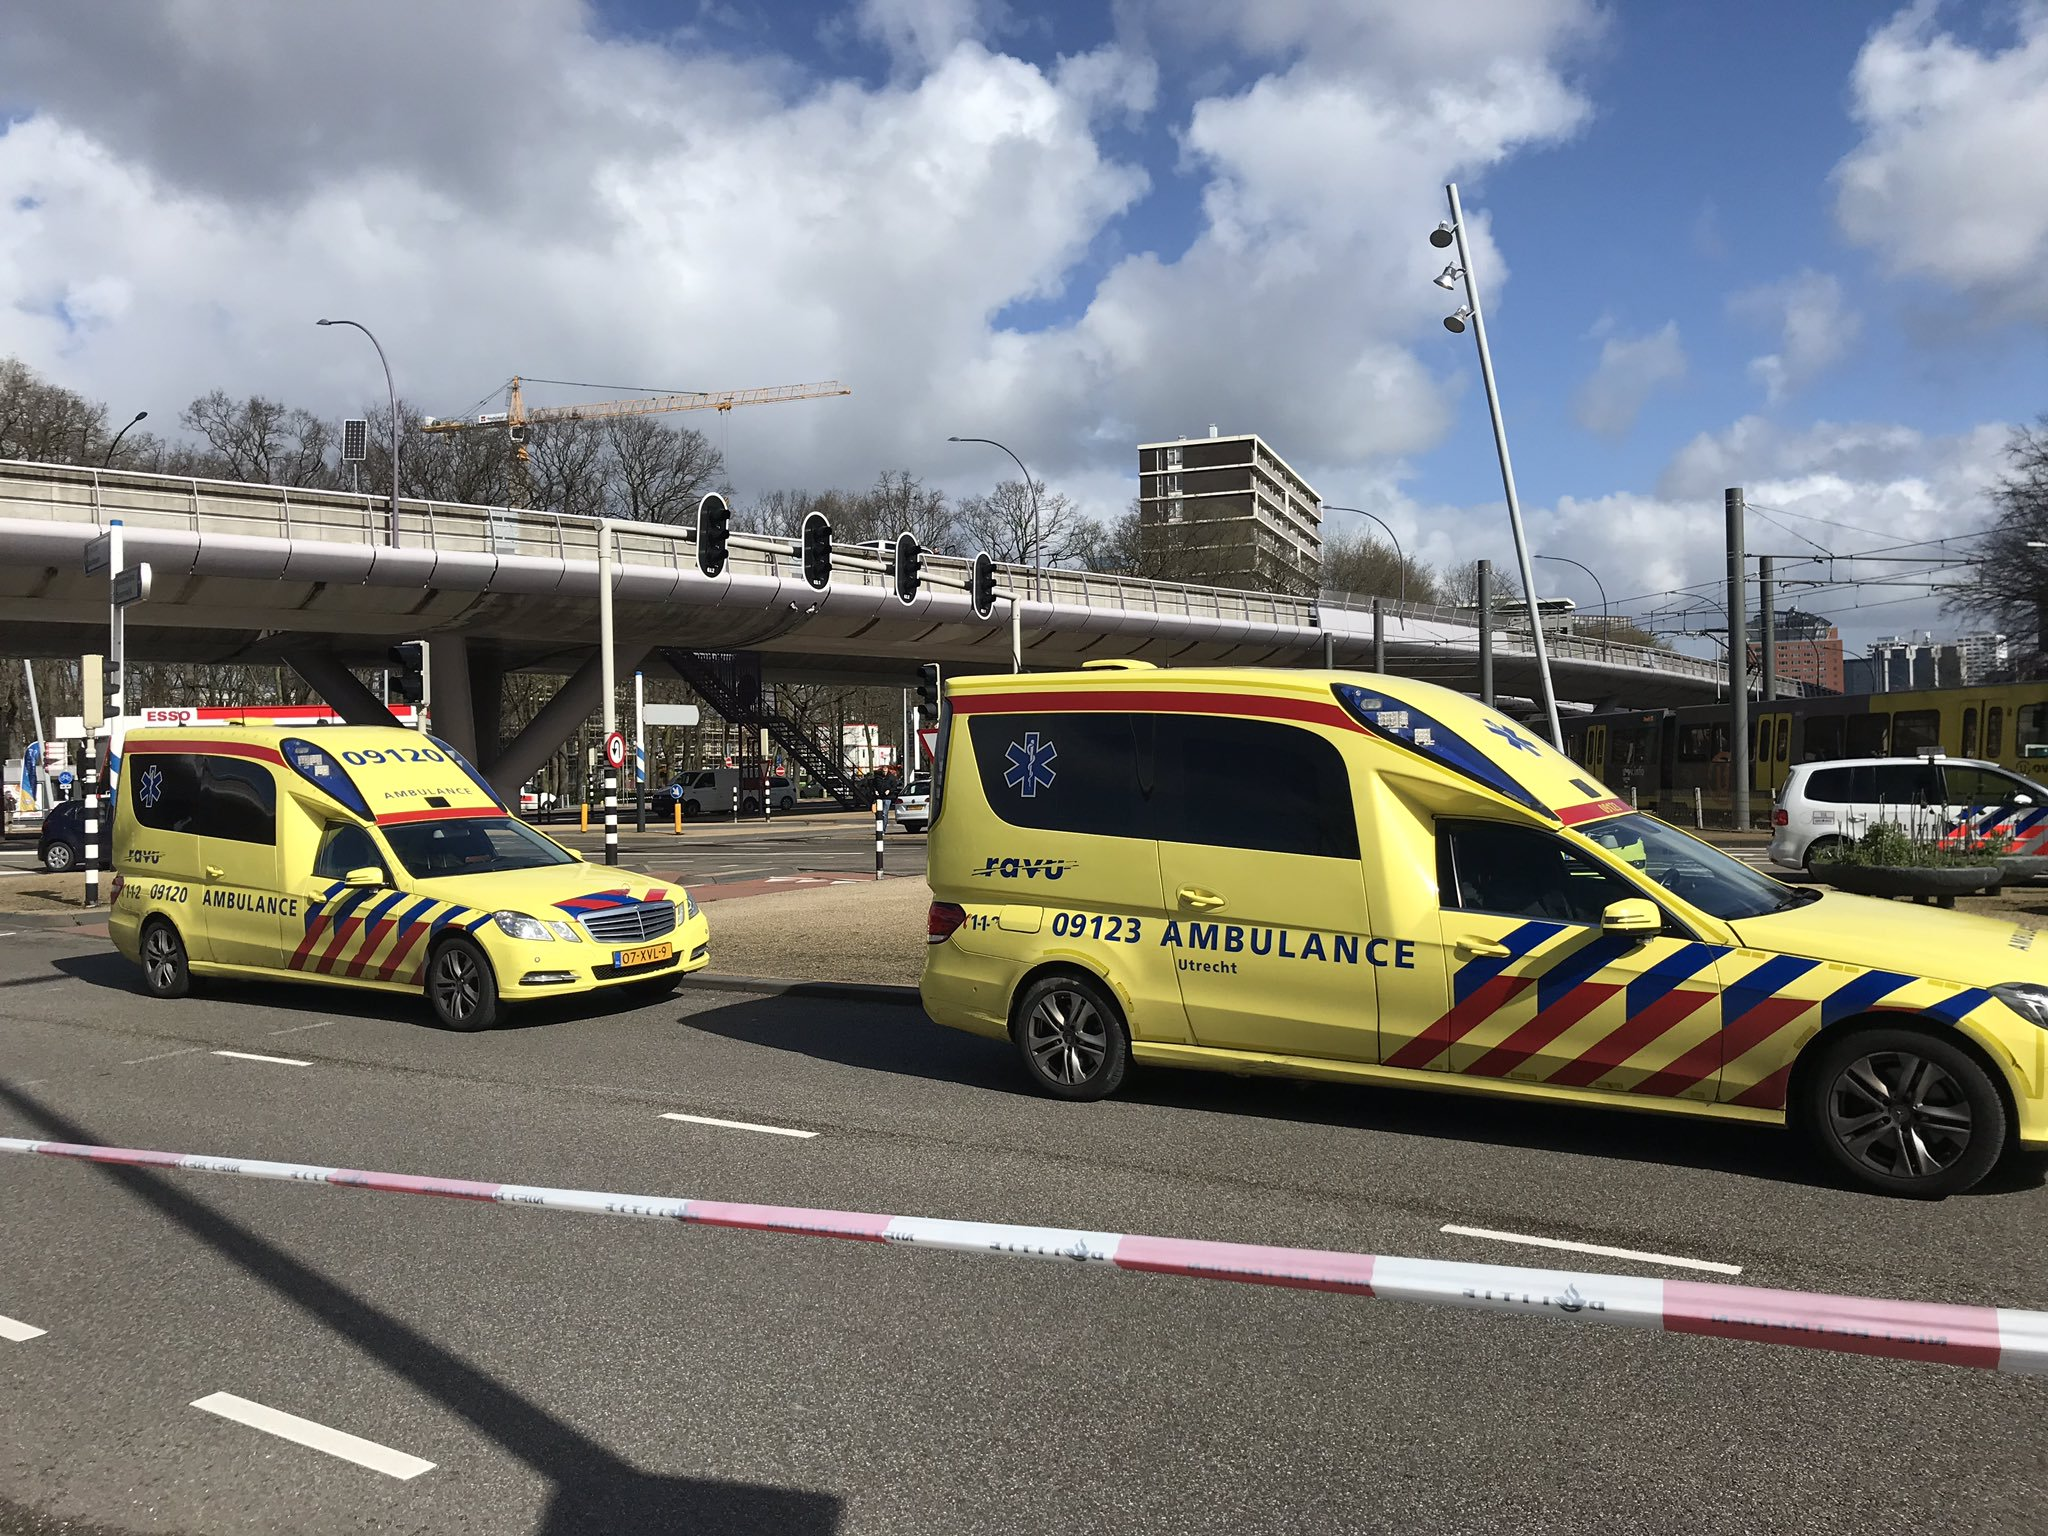 1 feared dead in Dutch tram shooting, terrorist motive possible